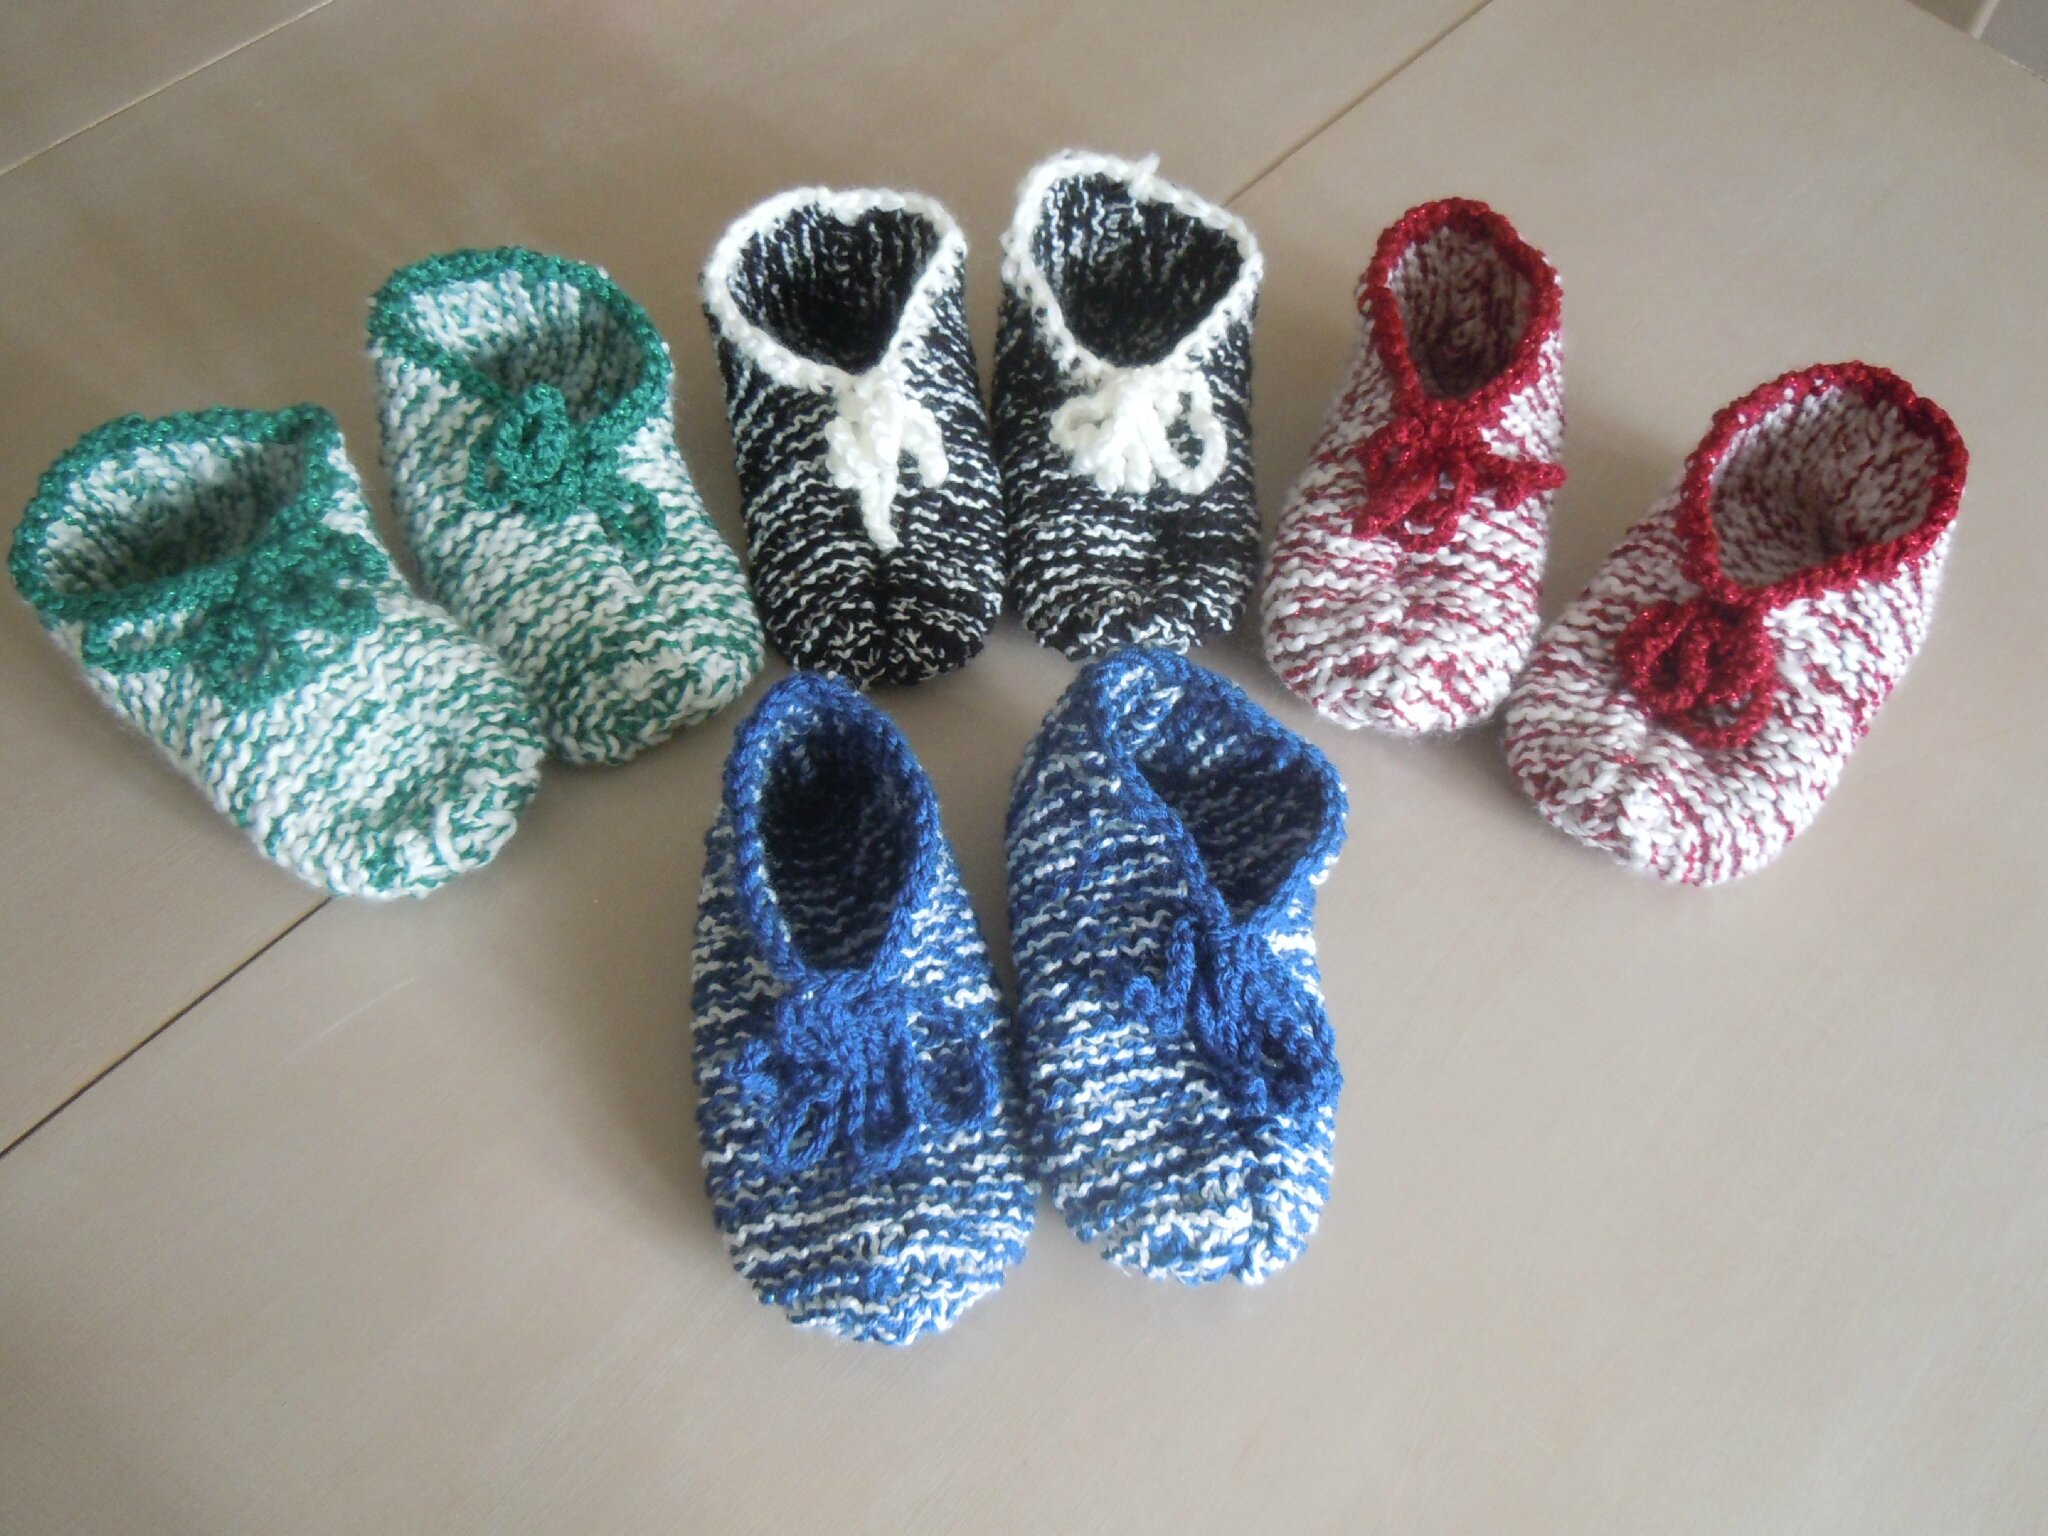 2014-11-10, chaussons